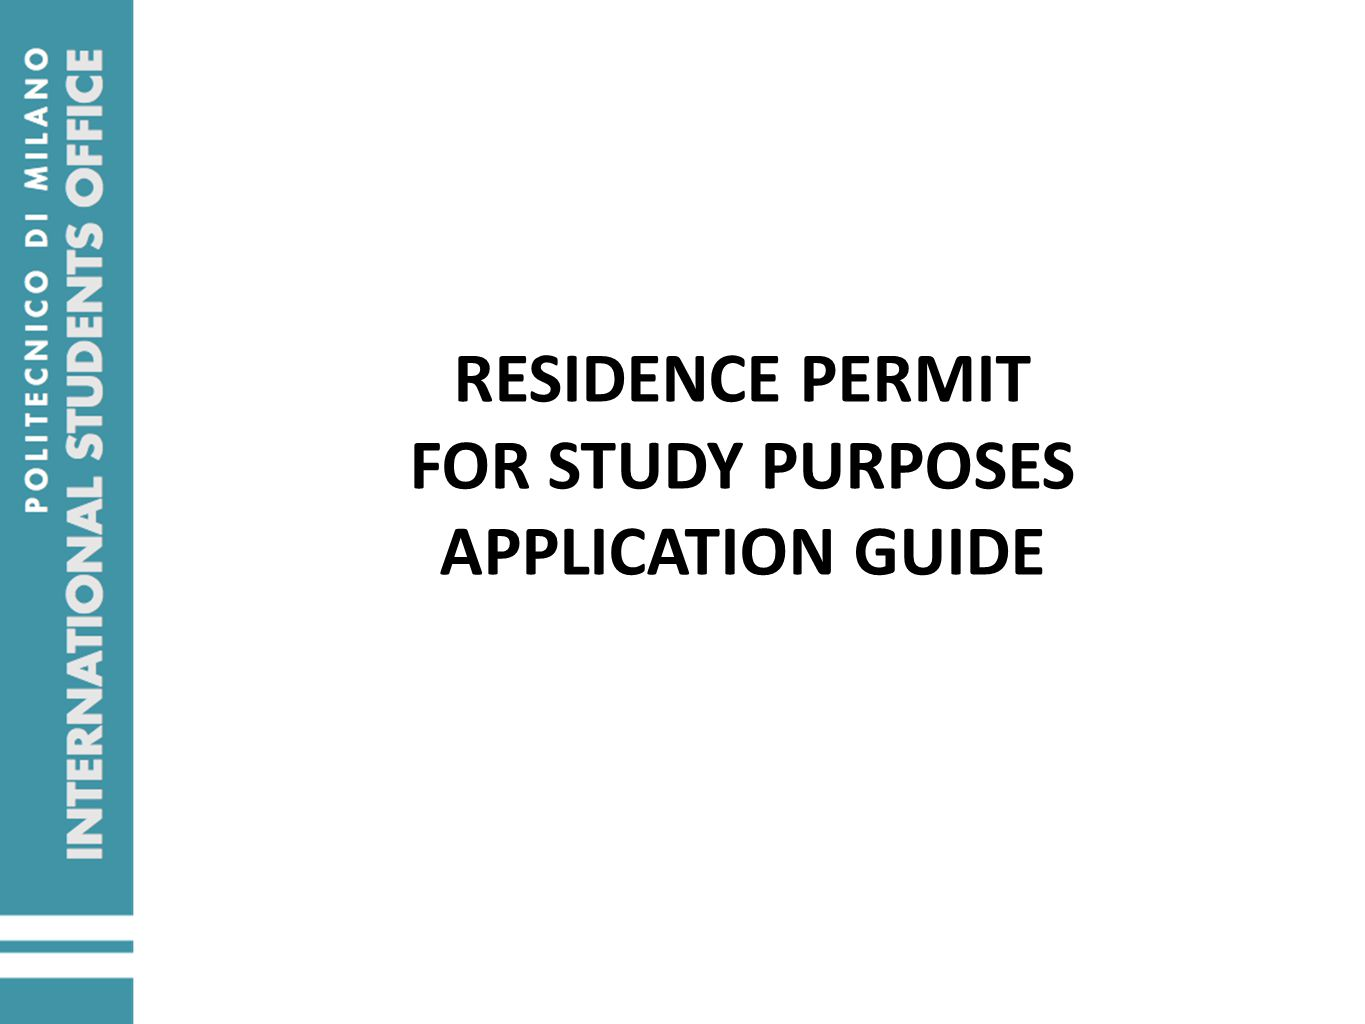 RESIDENCE PERMIT FOR STUDY PURPOSES APPLICATION GUIDE